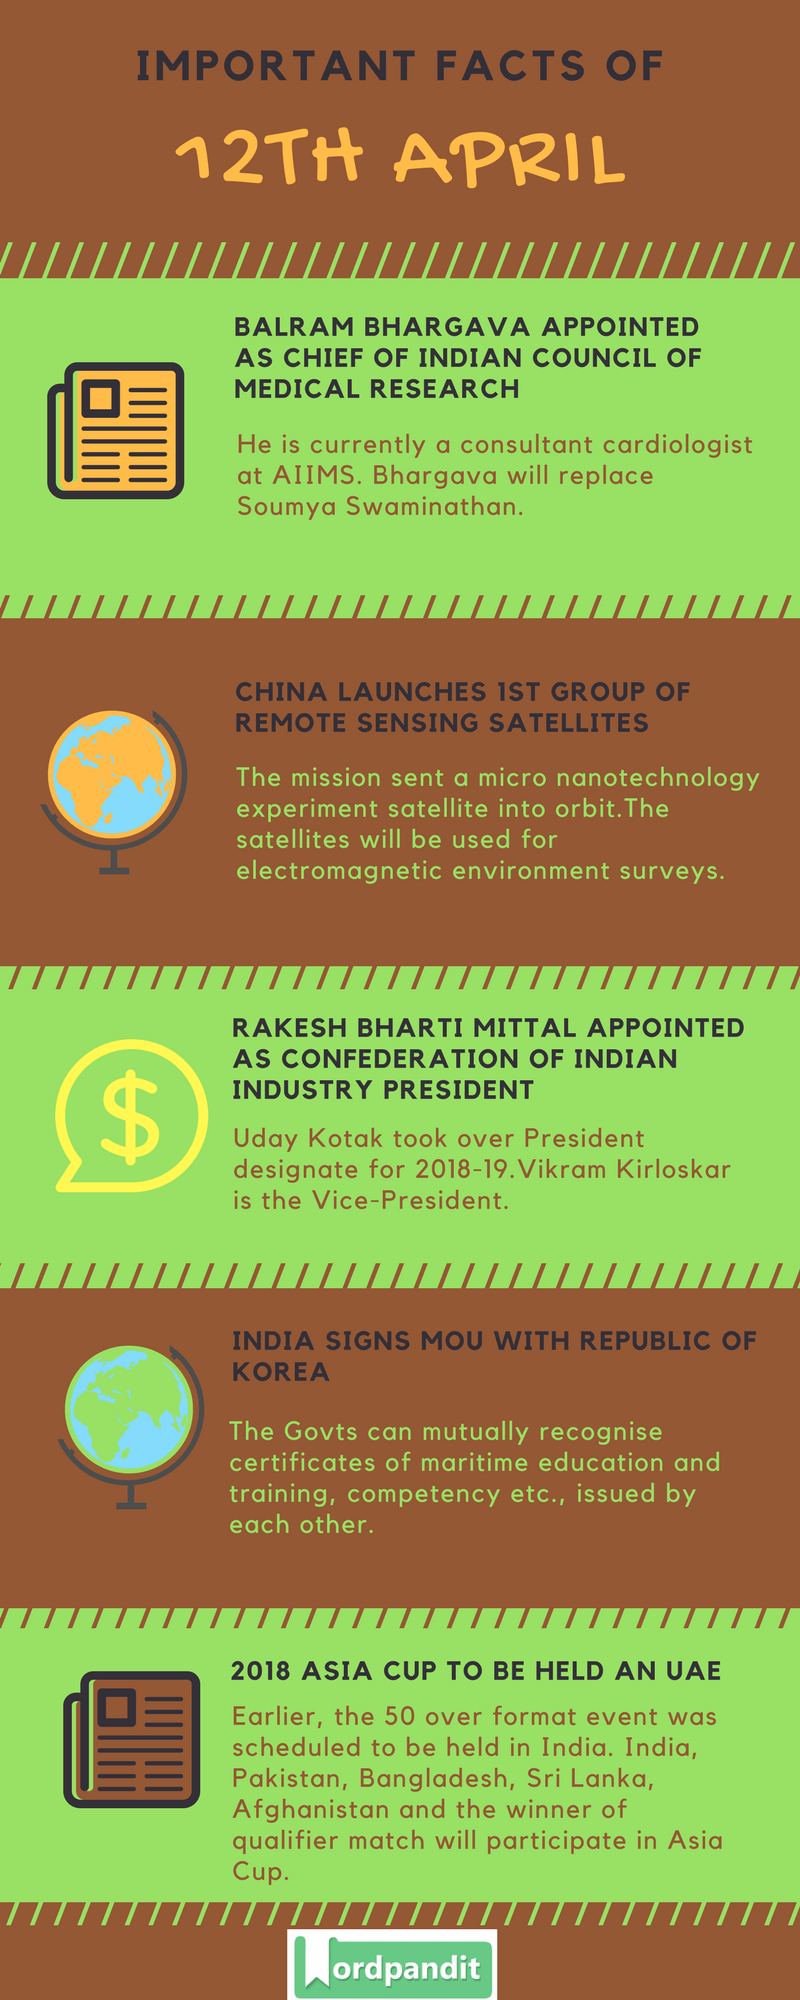 Daily Current Affairs 12 April 2018 Current Affairs Quiz April 12 2018 Current Affairs Infographic